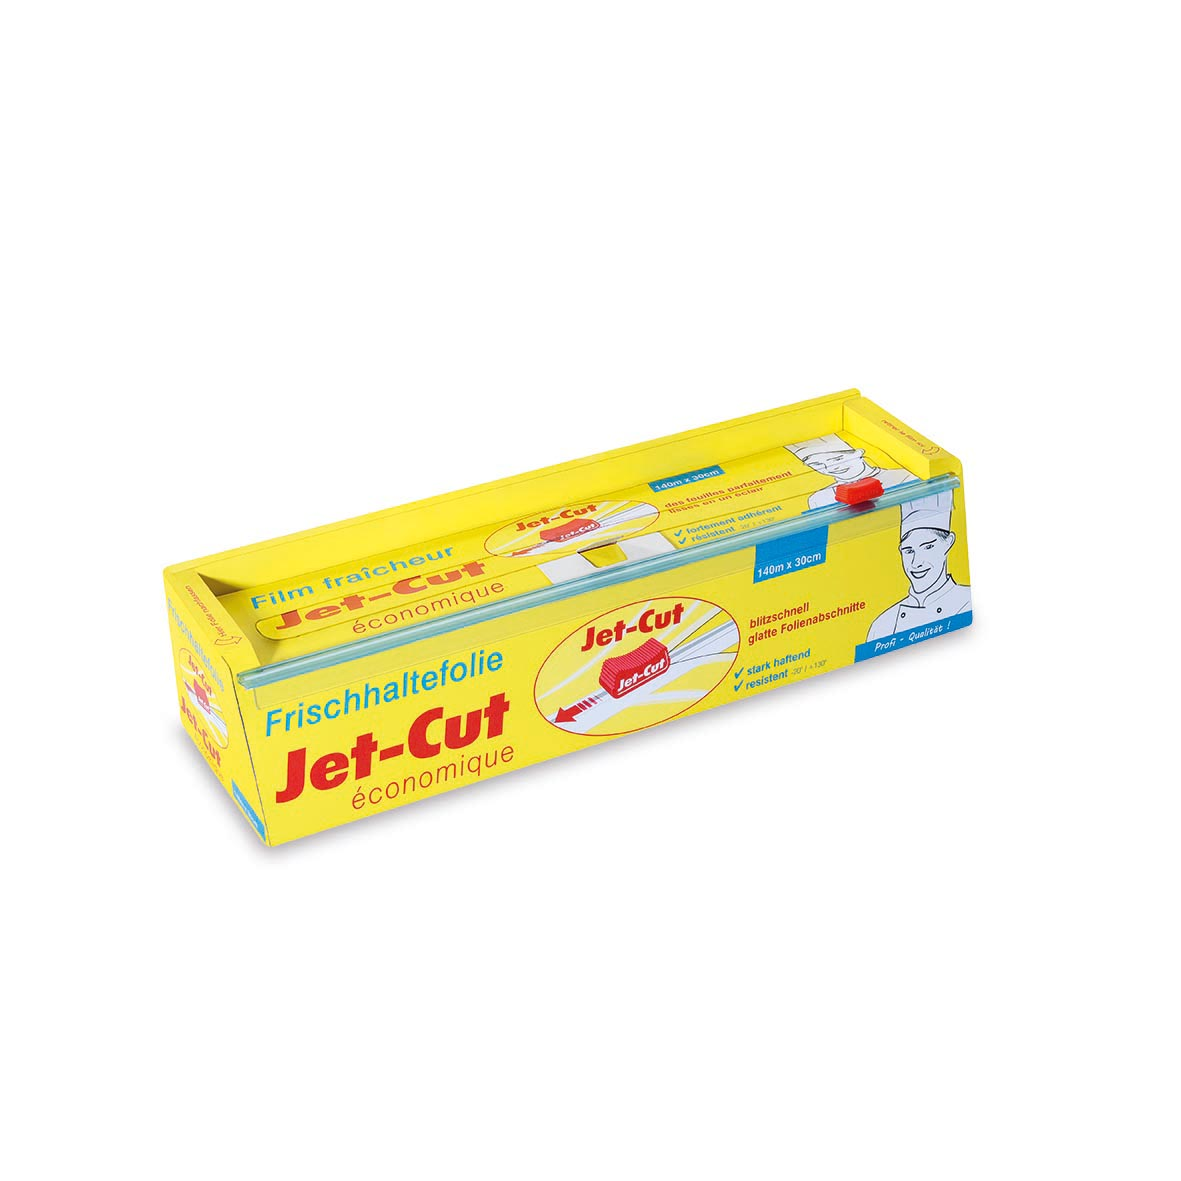 Jet-Cut Economique